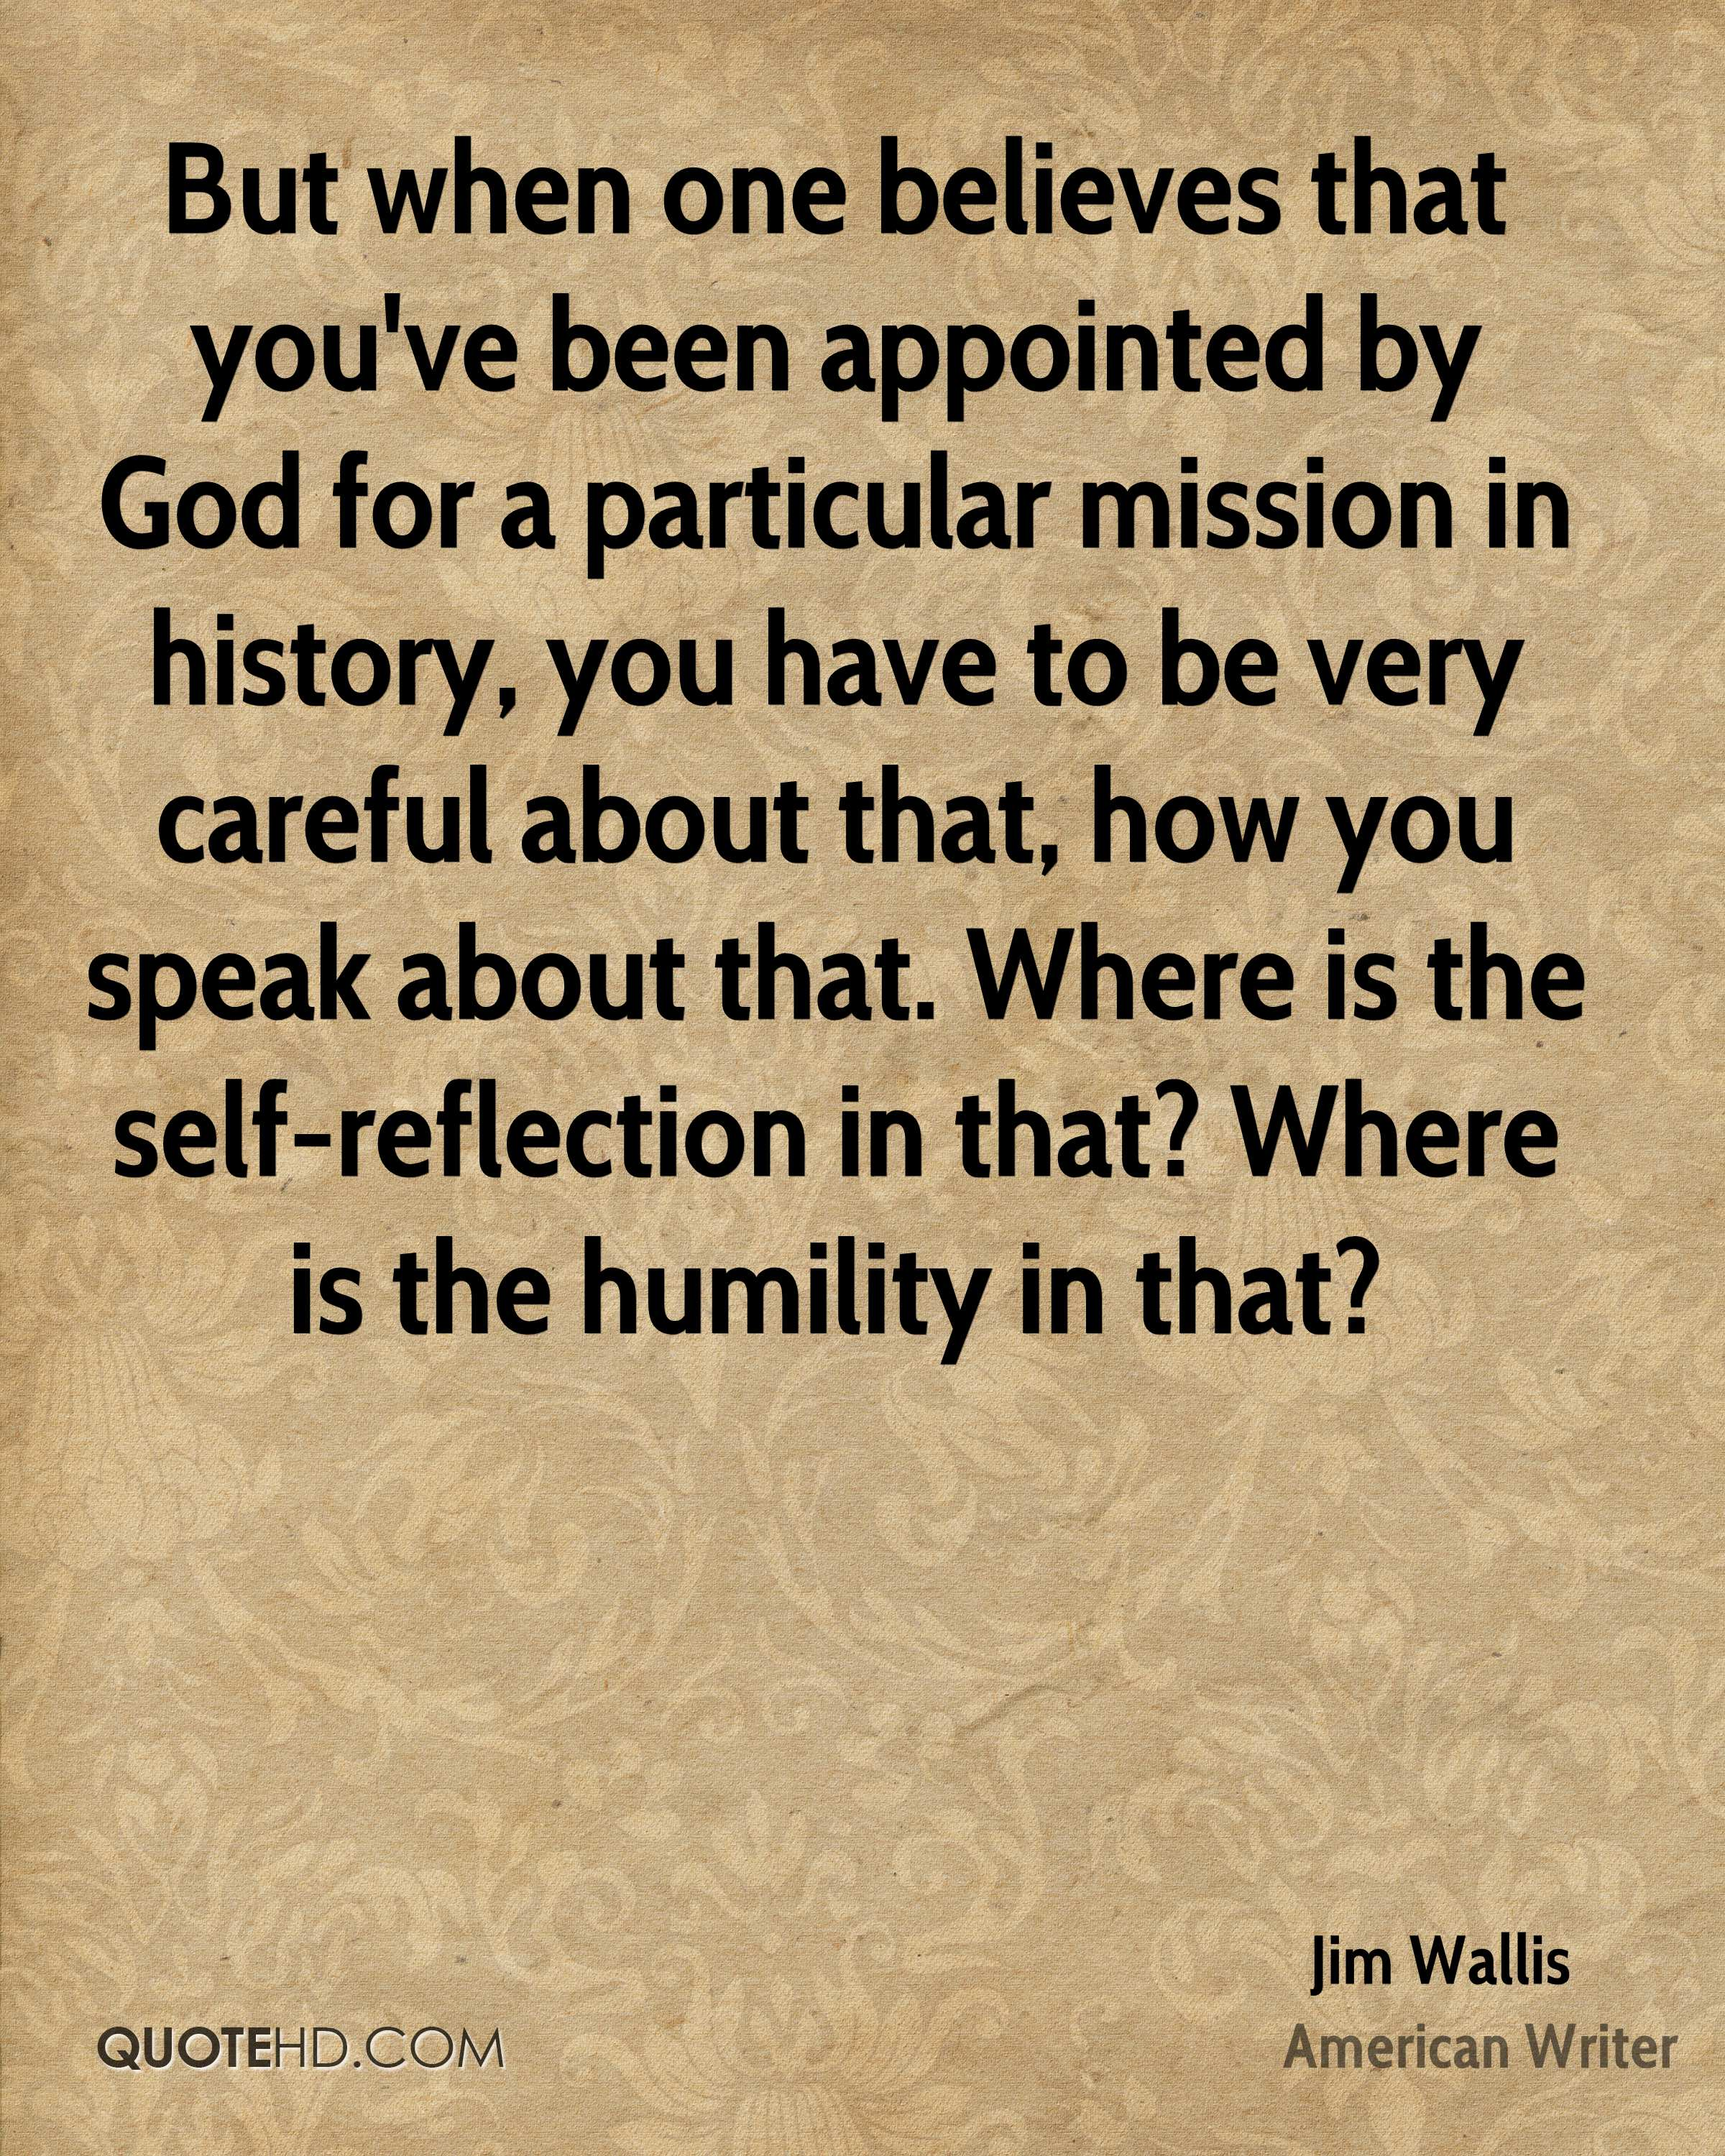 But when one believes that you've been appointed by God for a particular mission in history, you have to be very careful about that, how you speak about that. Where is the self-reflection in that? Where is the humility in that?